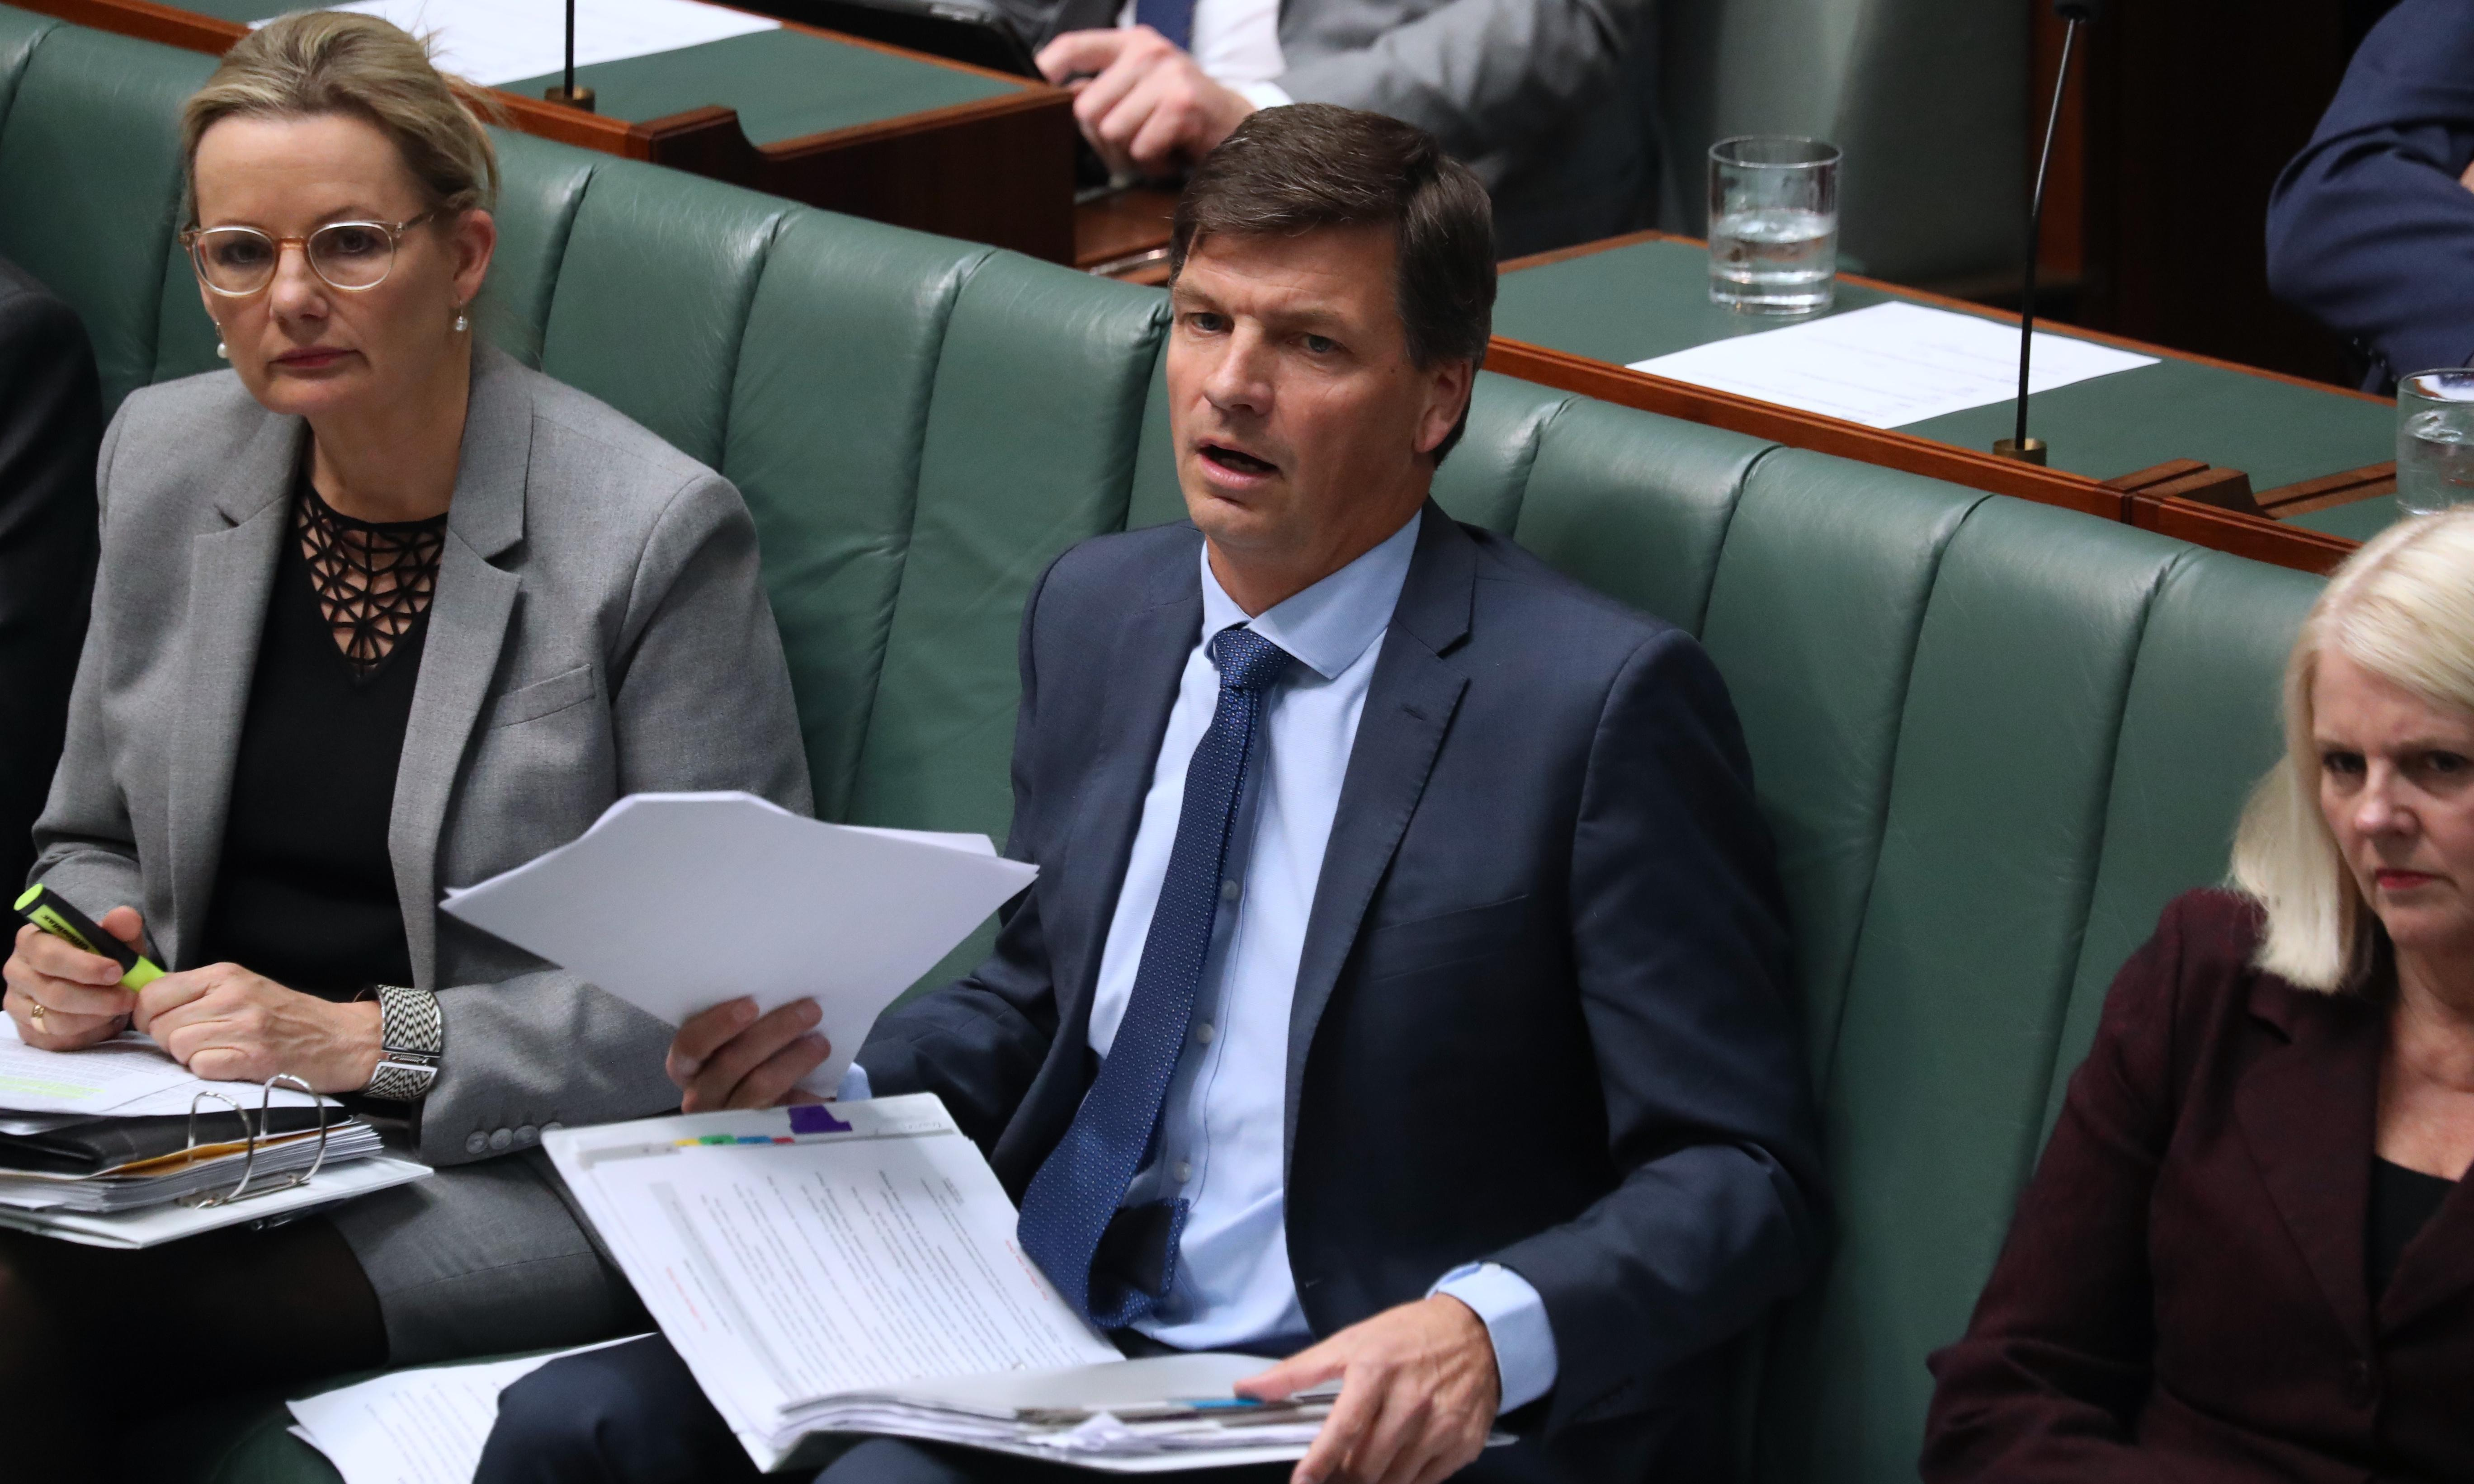 Angus Taylor did not disclose financial interest at grassland meeting, committee hears